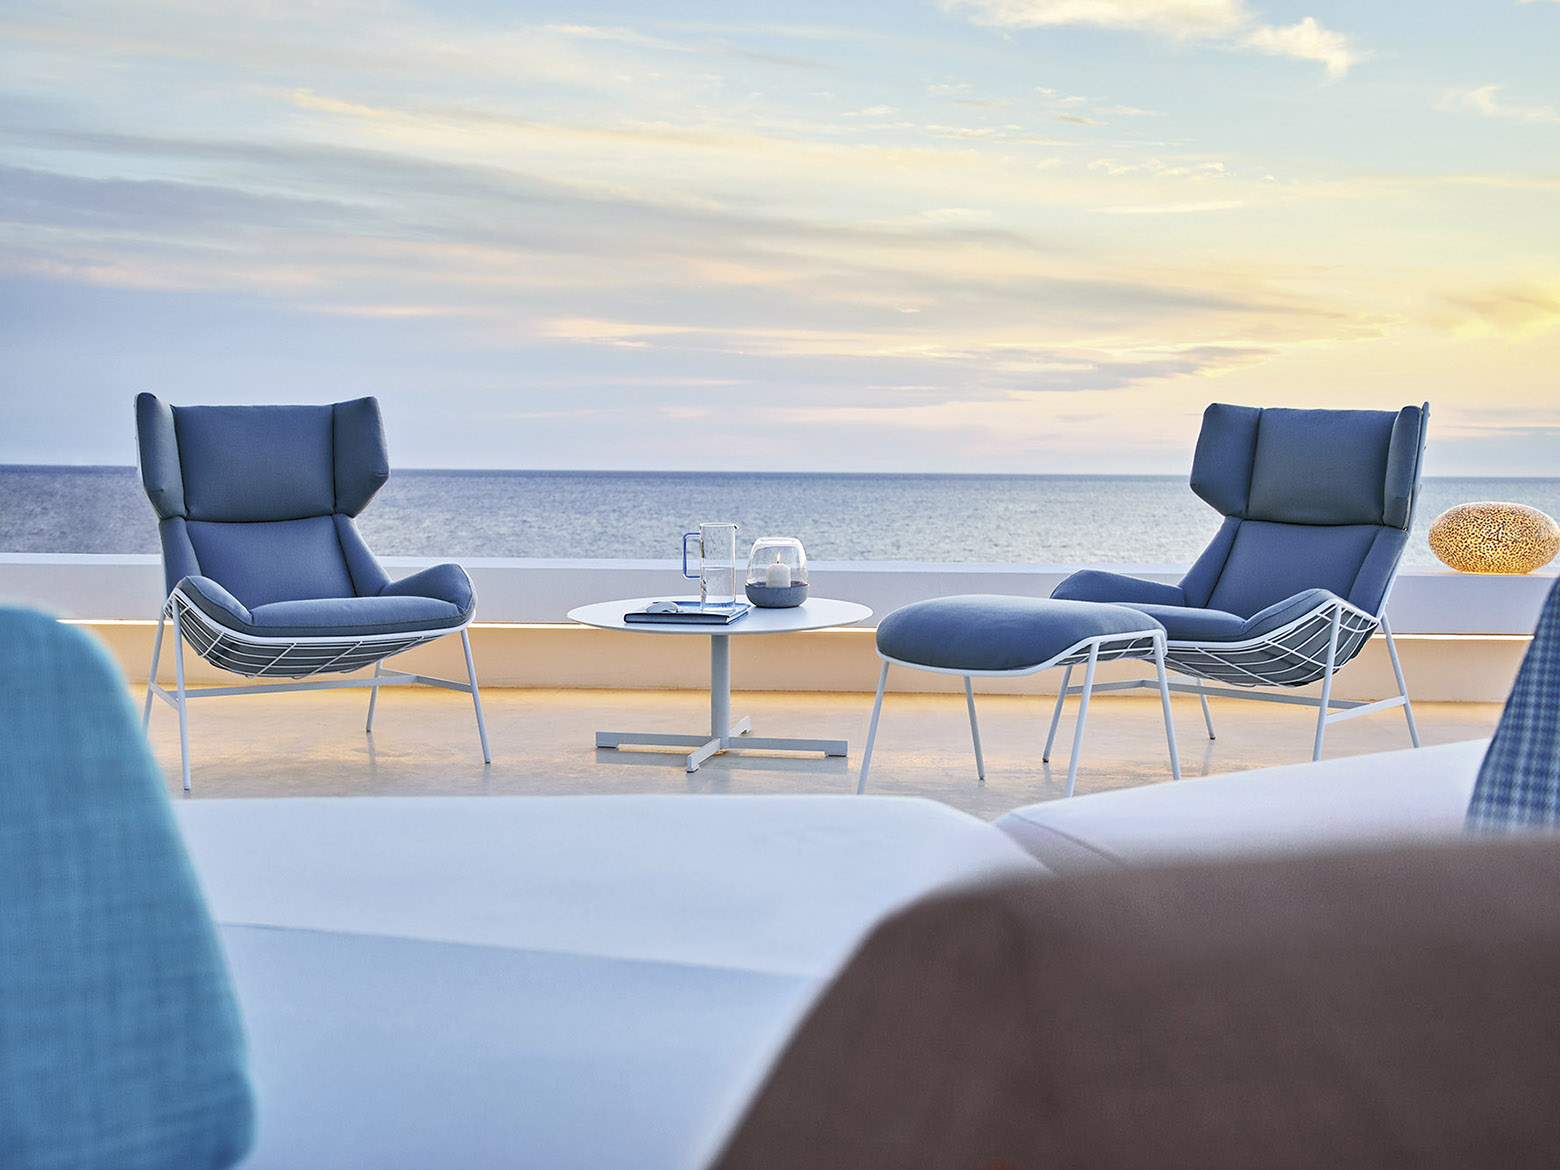 Outdoor furniture and contract furniture design made in Italy. Italian  furniture design, modern furniture online - Outdoor Furniture And Contract Furniture Design Made In Italy